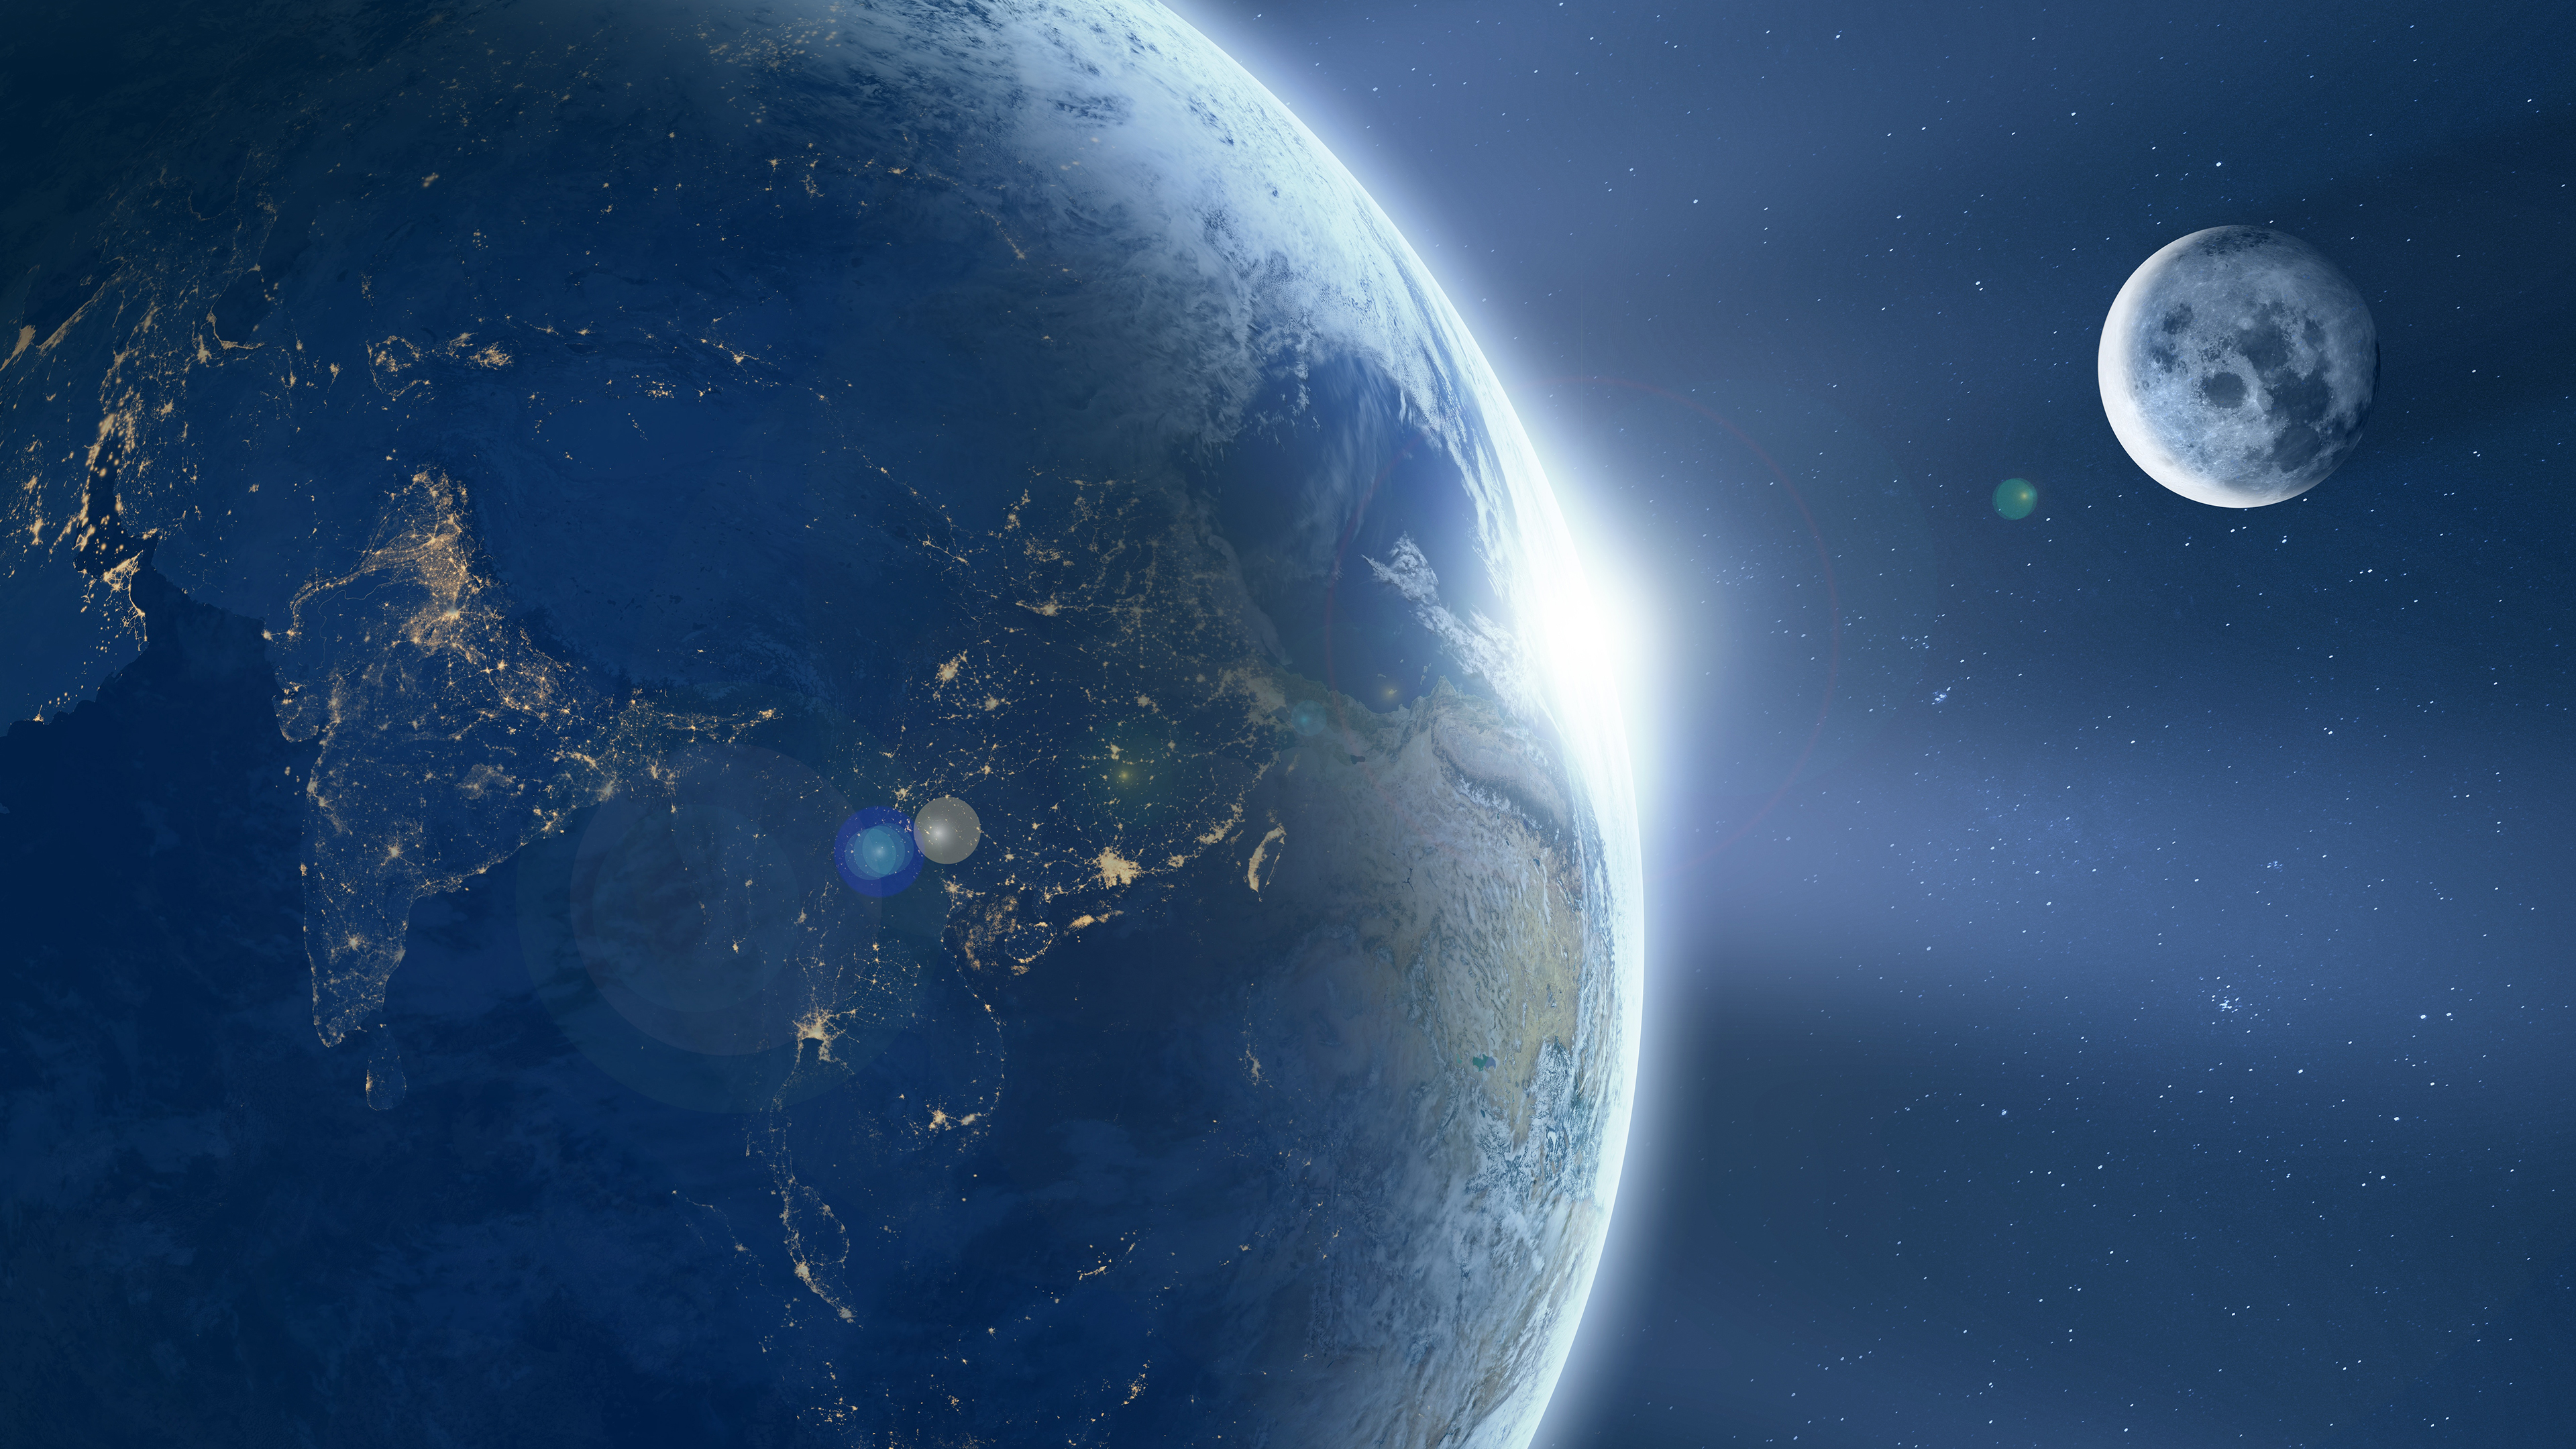 Earth From Space Chromebook Wallpaper